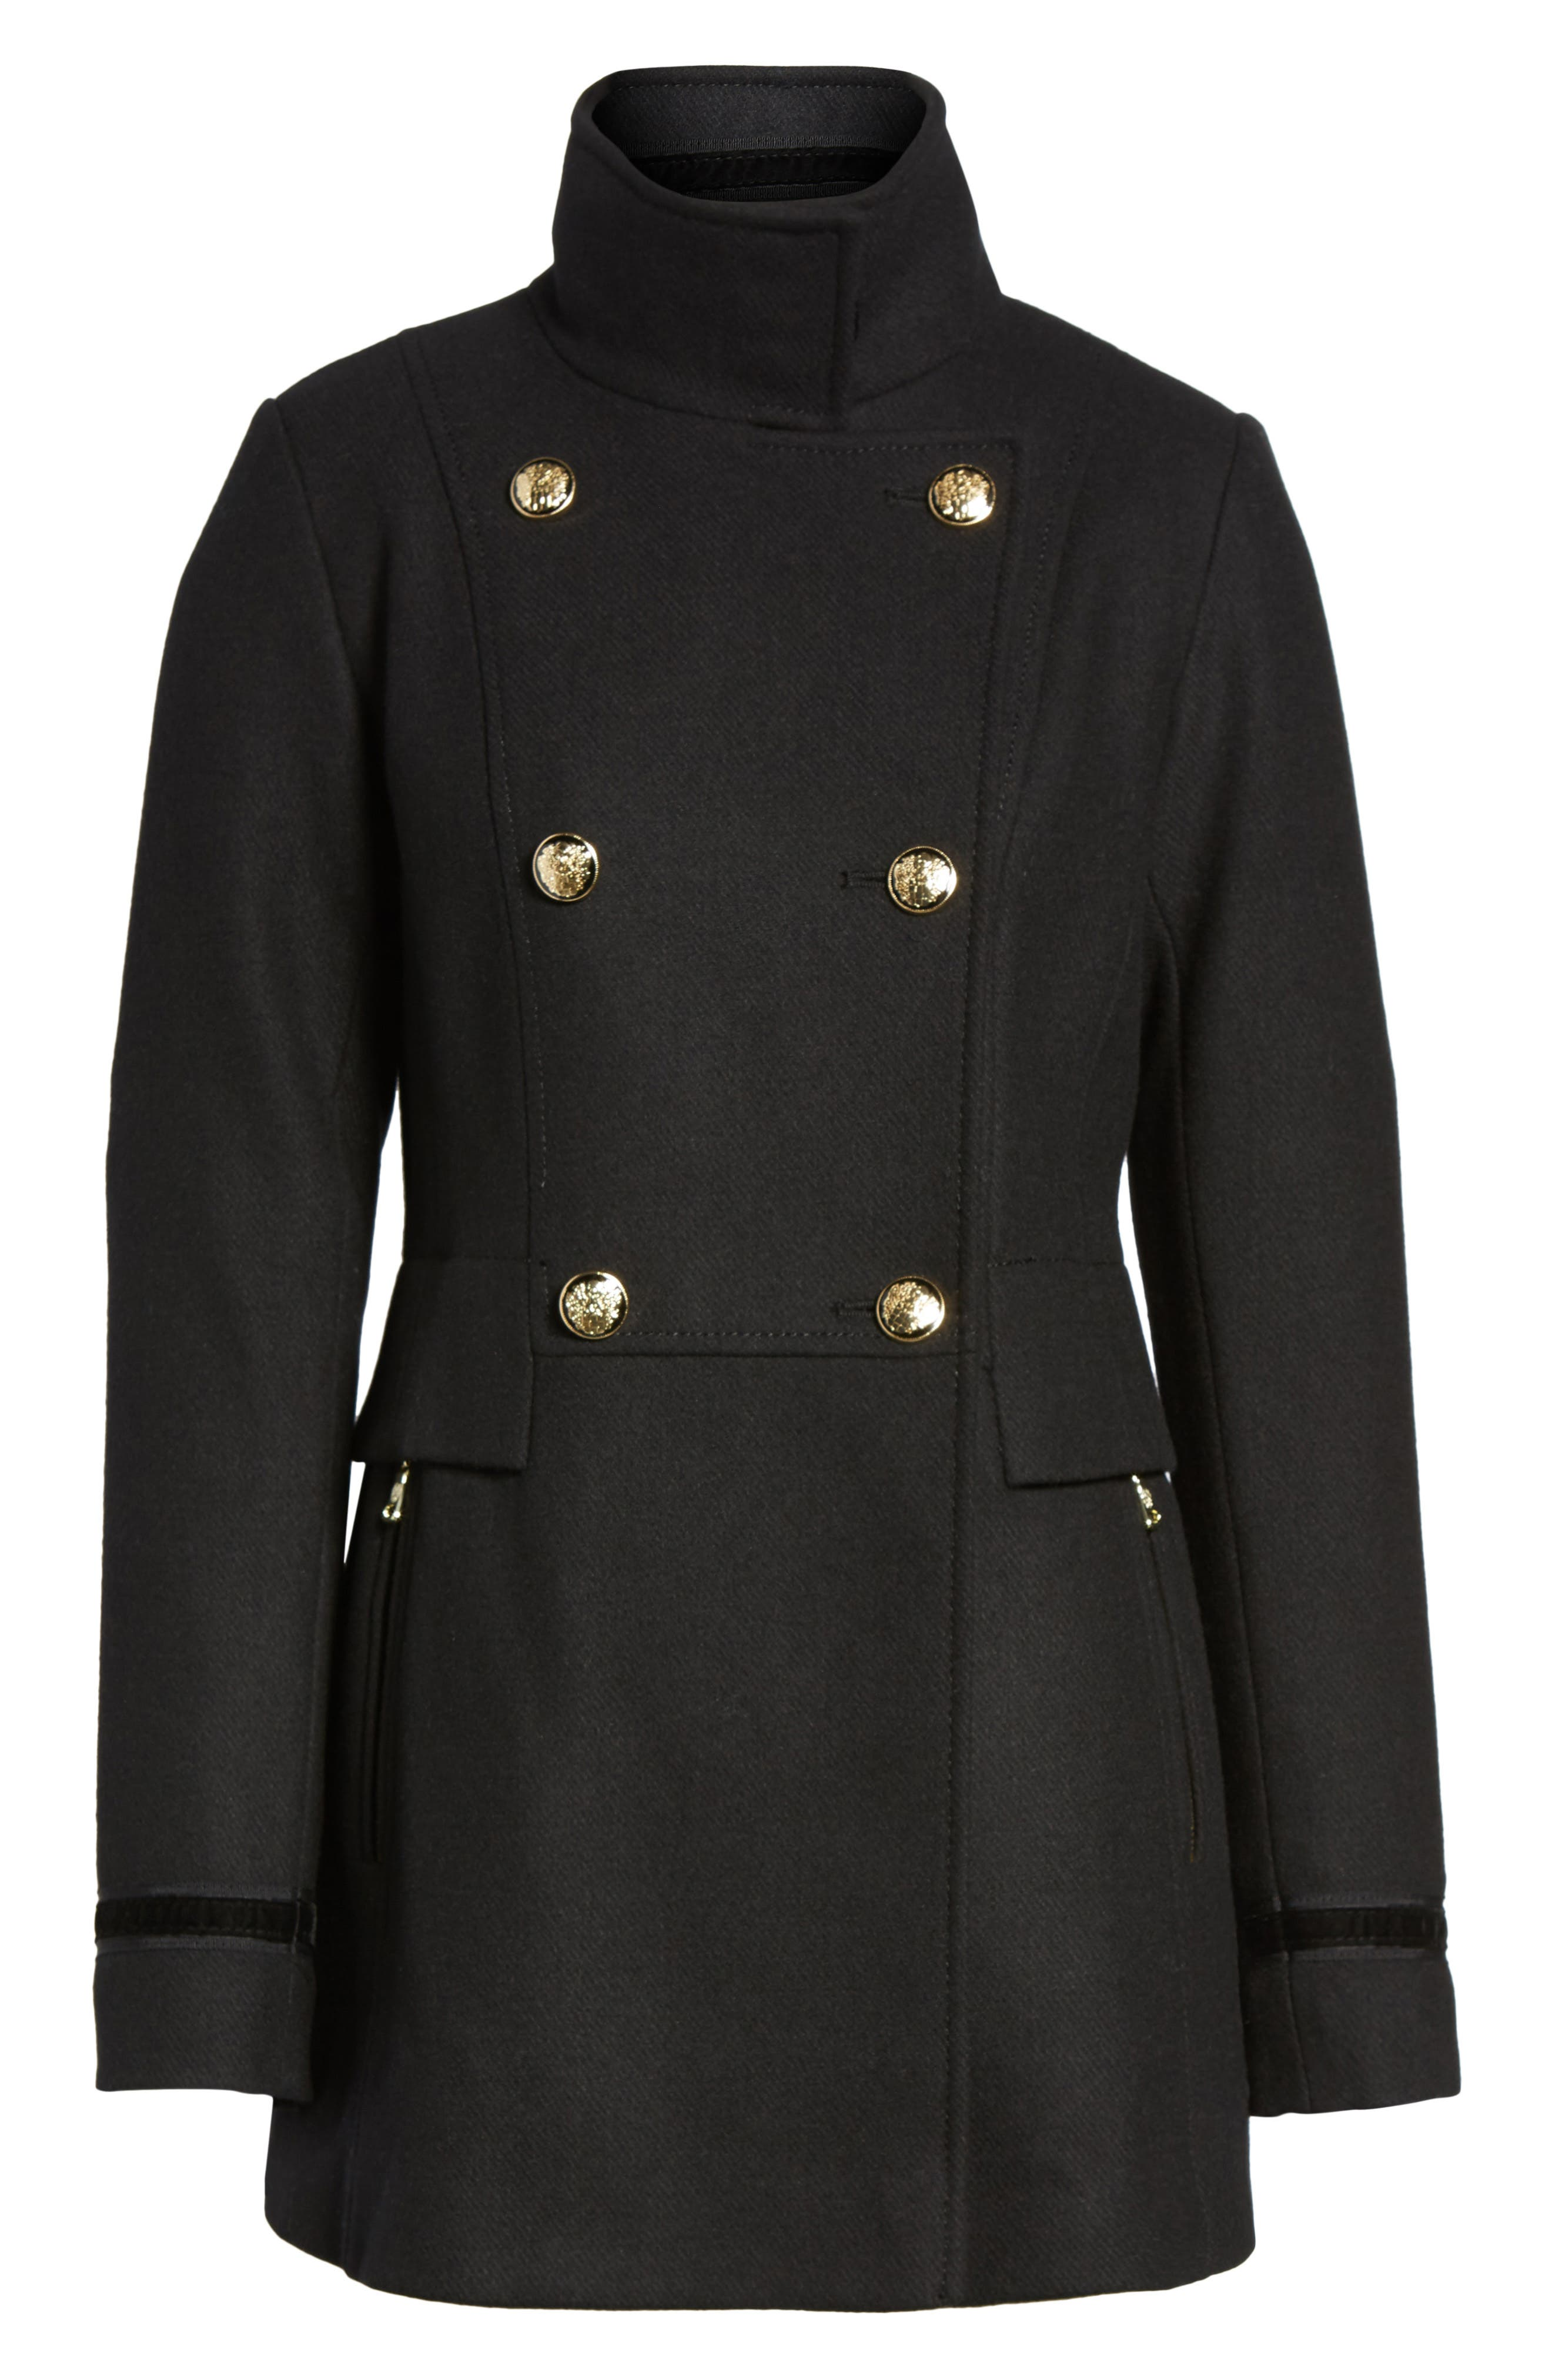 Alternate Image 1 Selected - Vince Camuto Wool Blend Military Coat